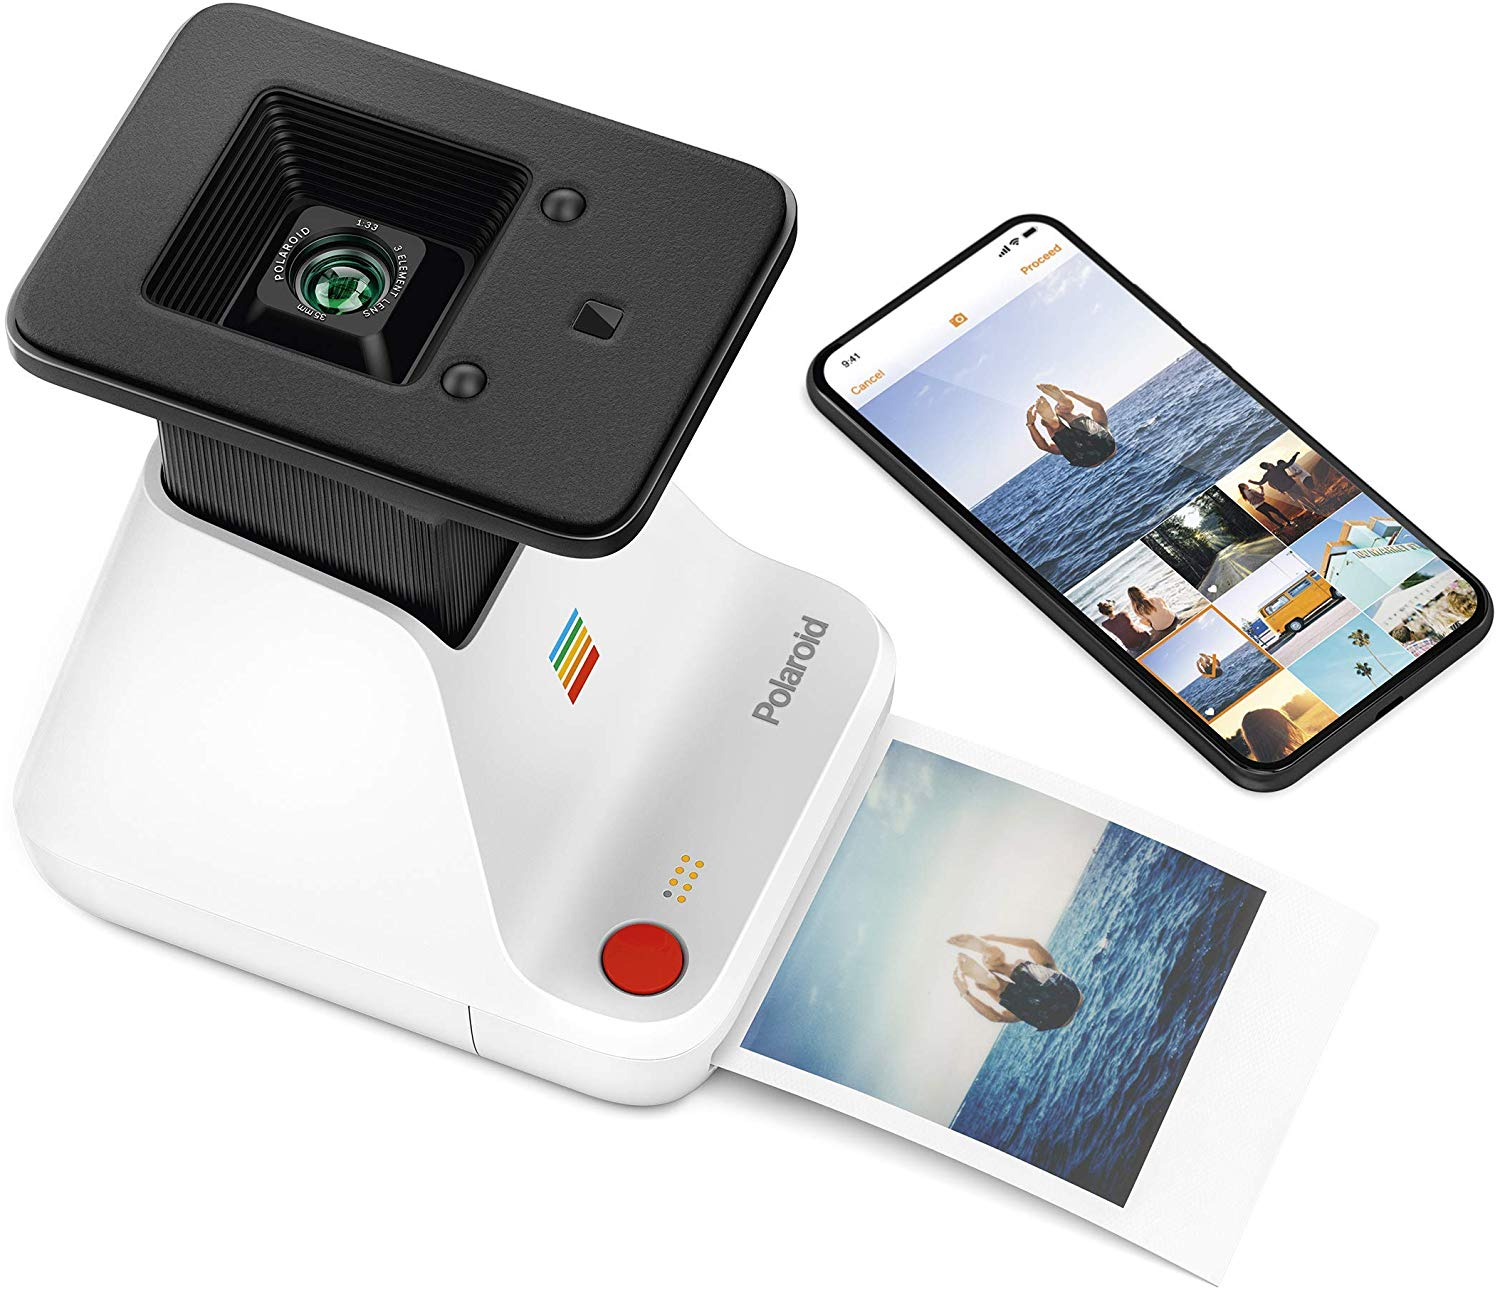 The Polaroid Lab - Digital to Analog Polaroid Photo Printer, $130 @amazon.com